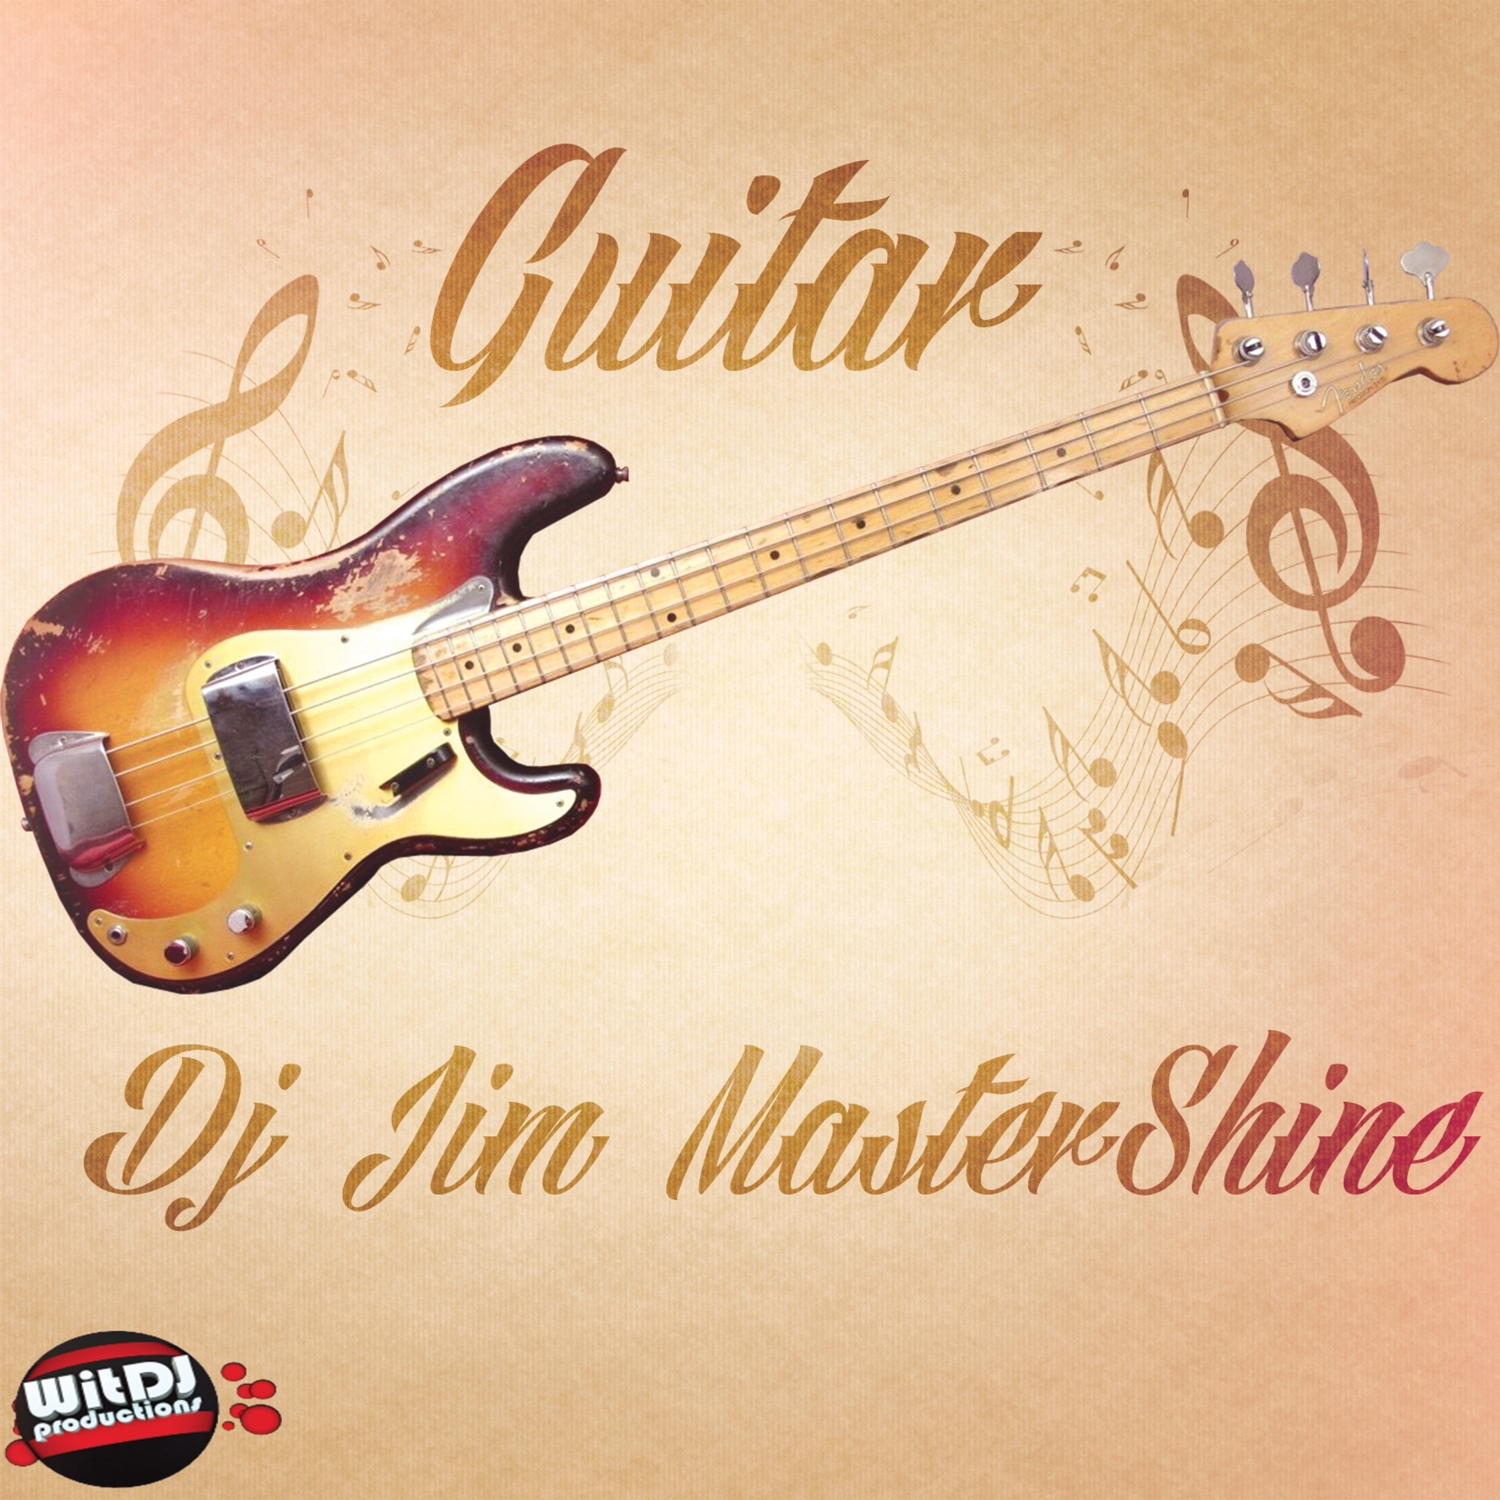 Dj Jim Mastershine - Guitar (Main Mix)